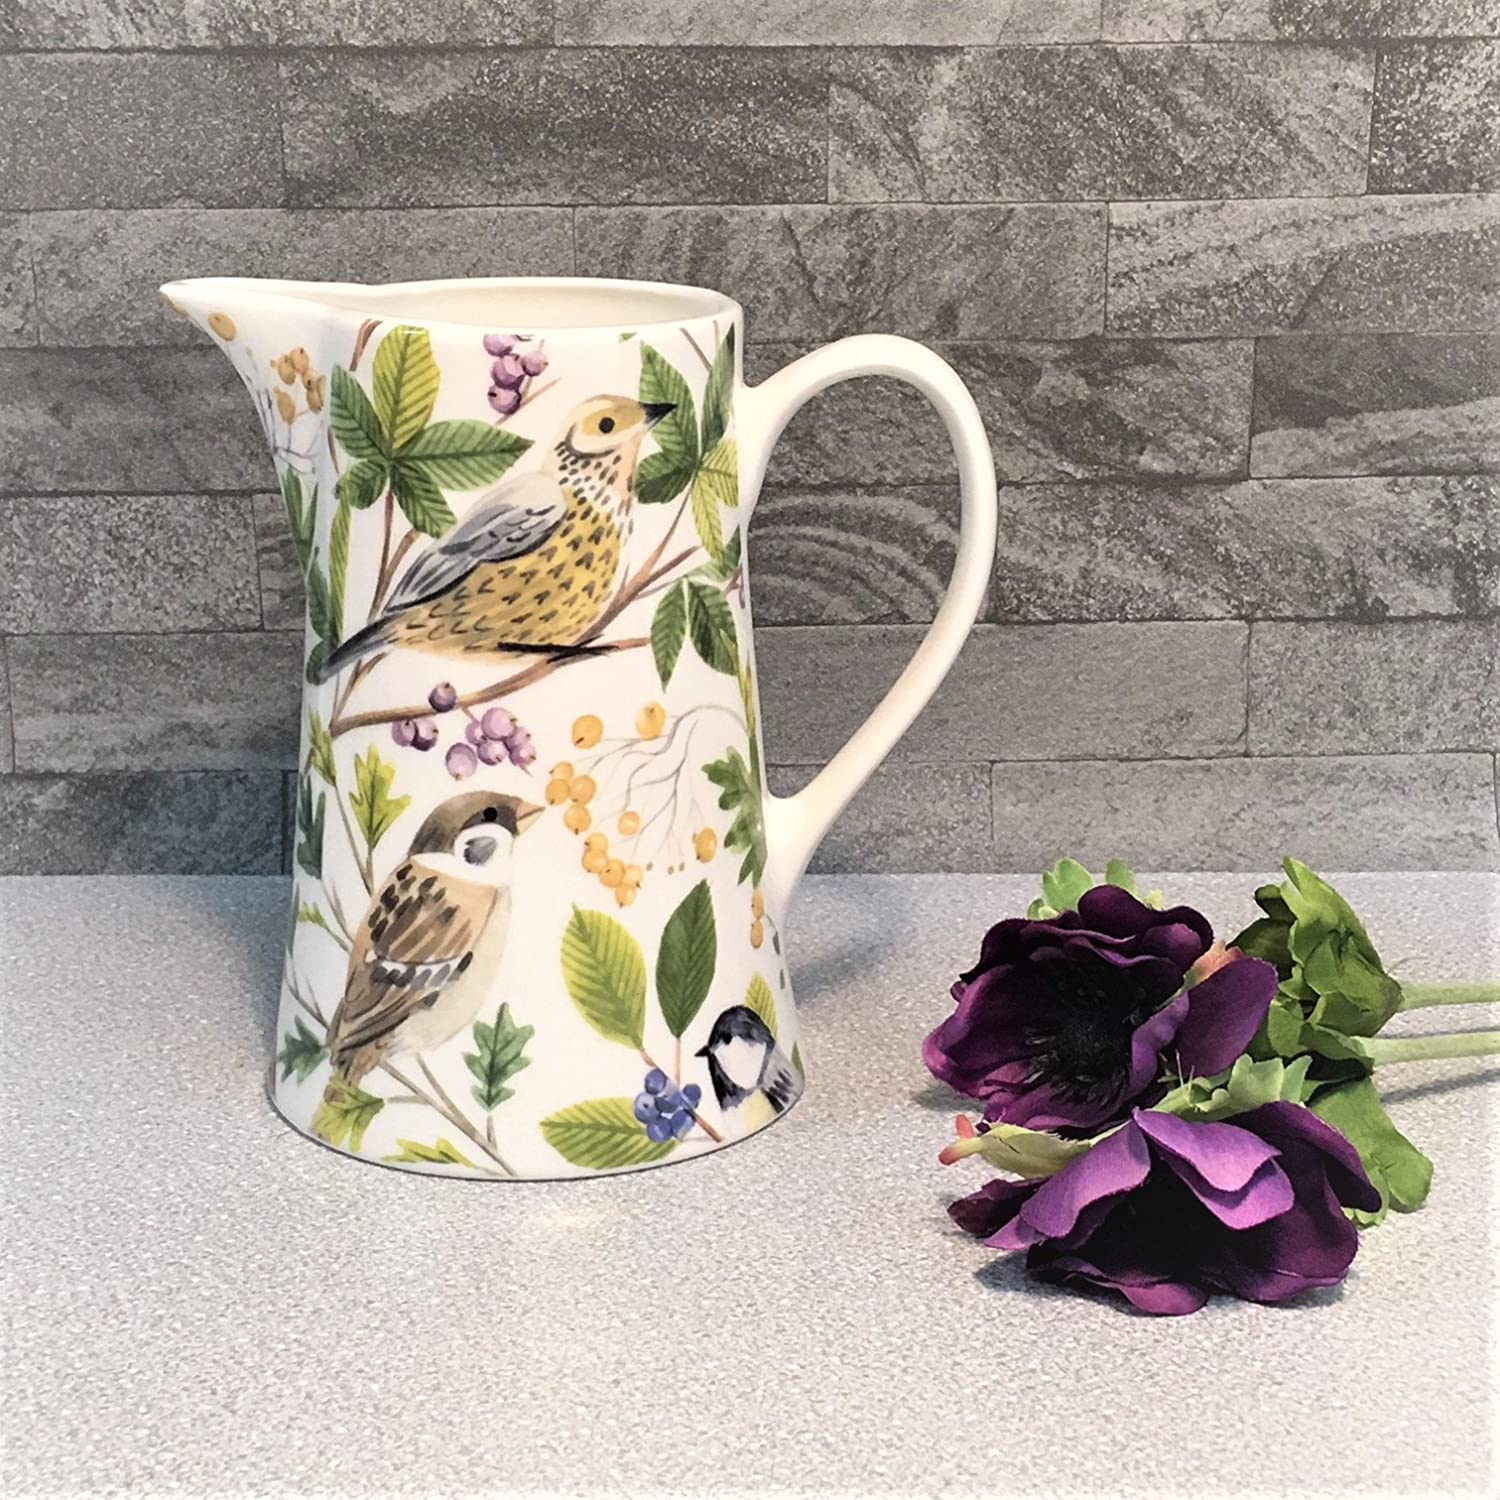 Gisela Graham British Garden Birds in ceramica brocca vaso 15/ cm Birthday Gift Her